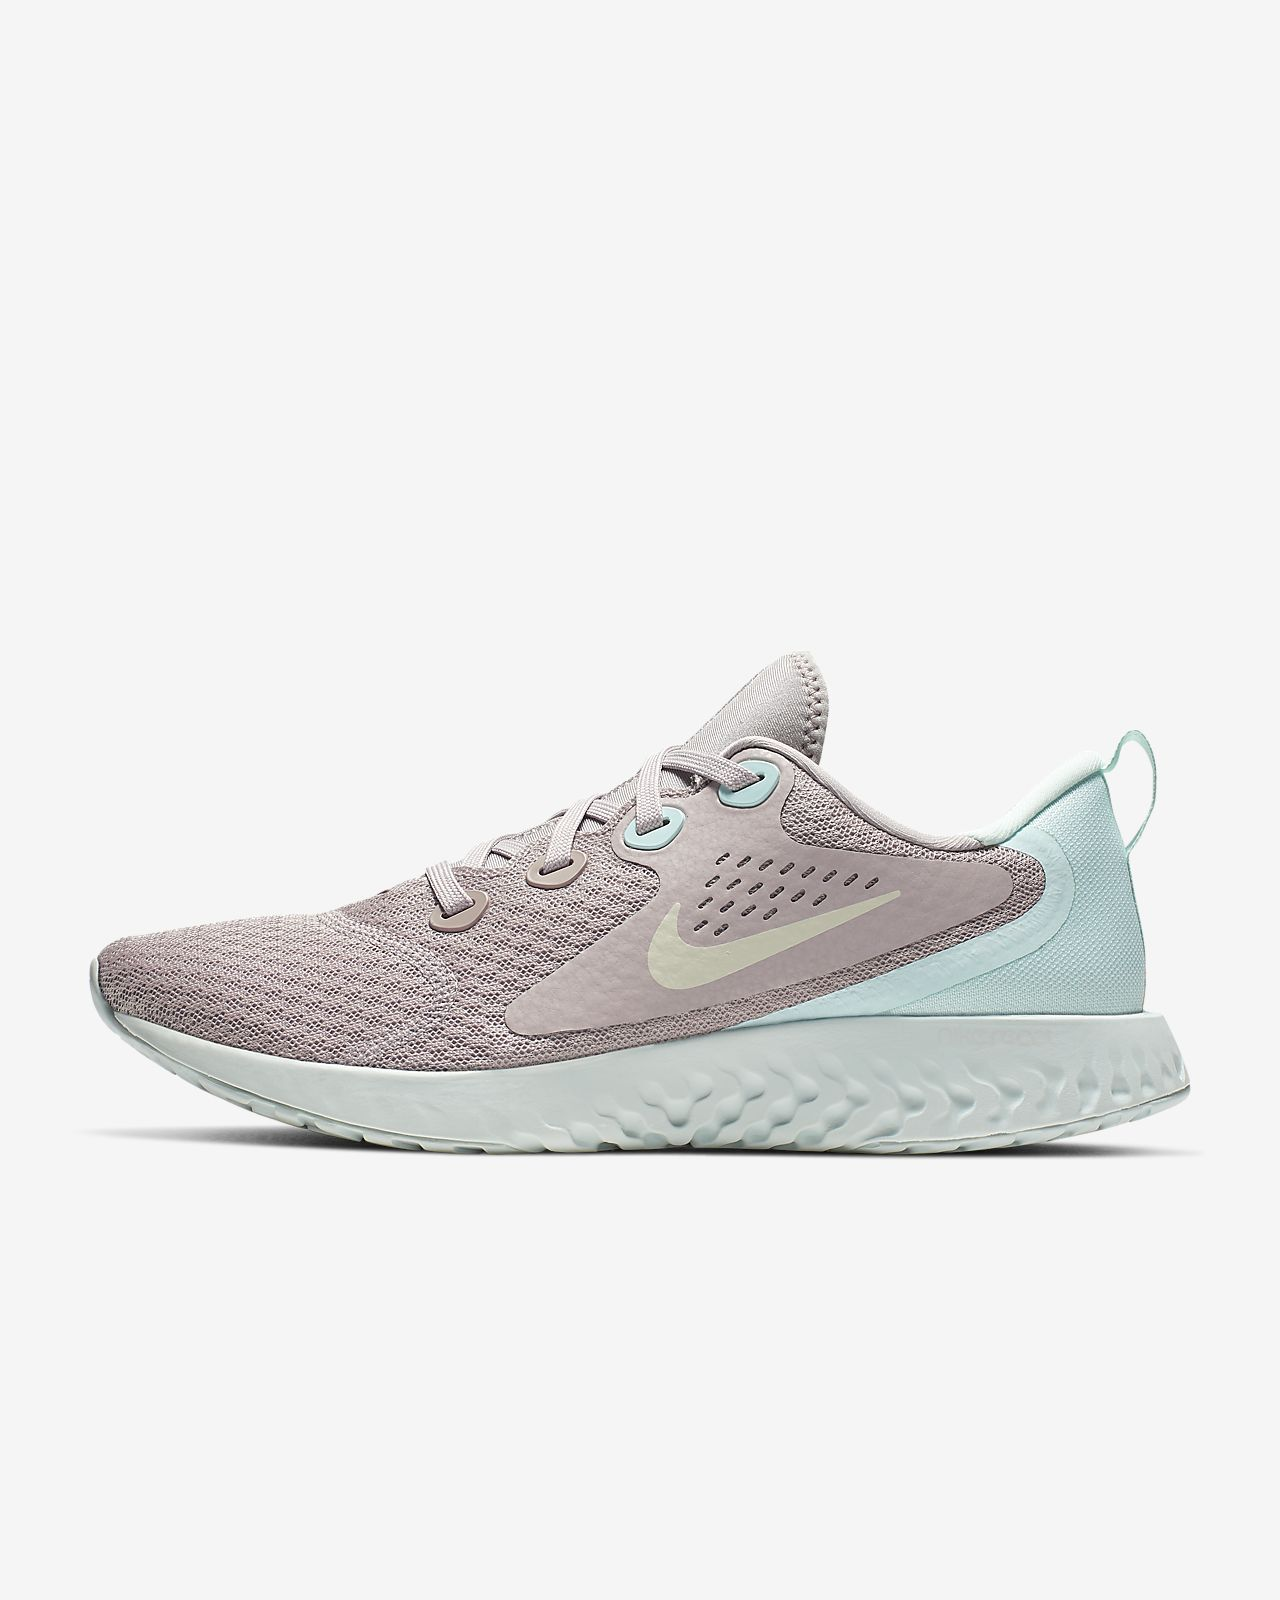 5960fc8dedaa Nike Legend React Women s Running Shoe. Nike.com AU